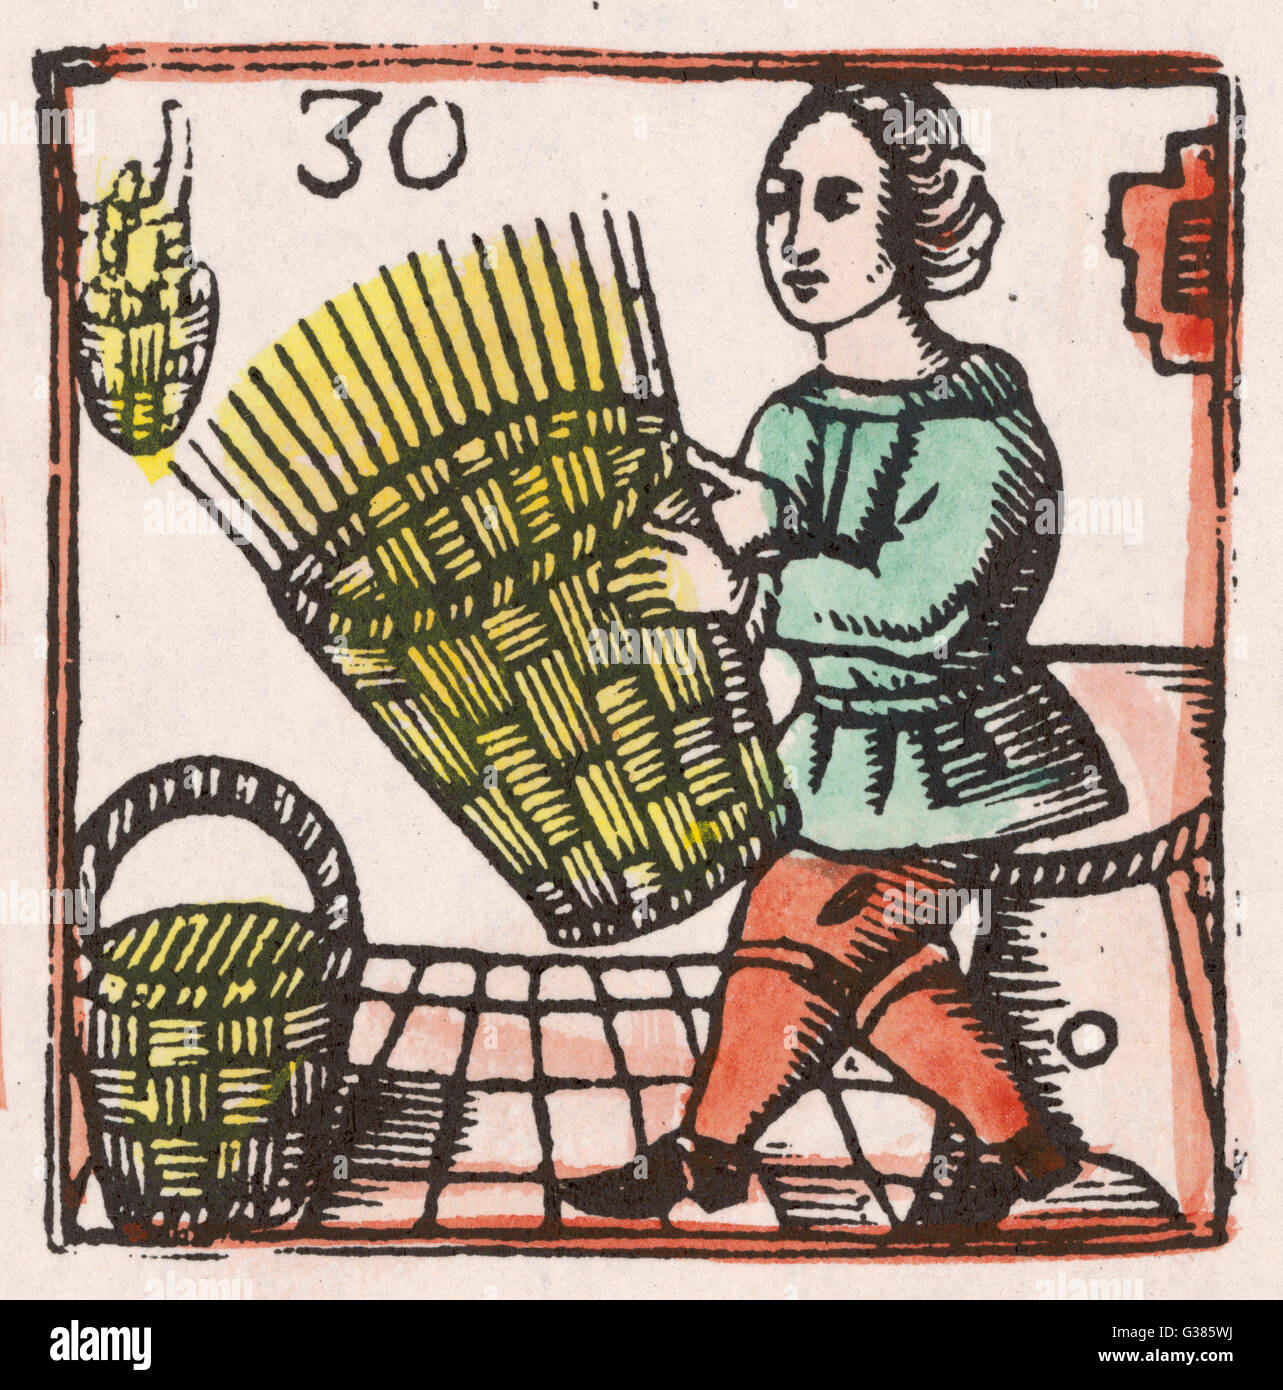 A basket maker at work on  a nearly completed basket.         Date: 17th century - Stock Image